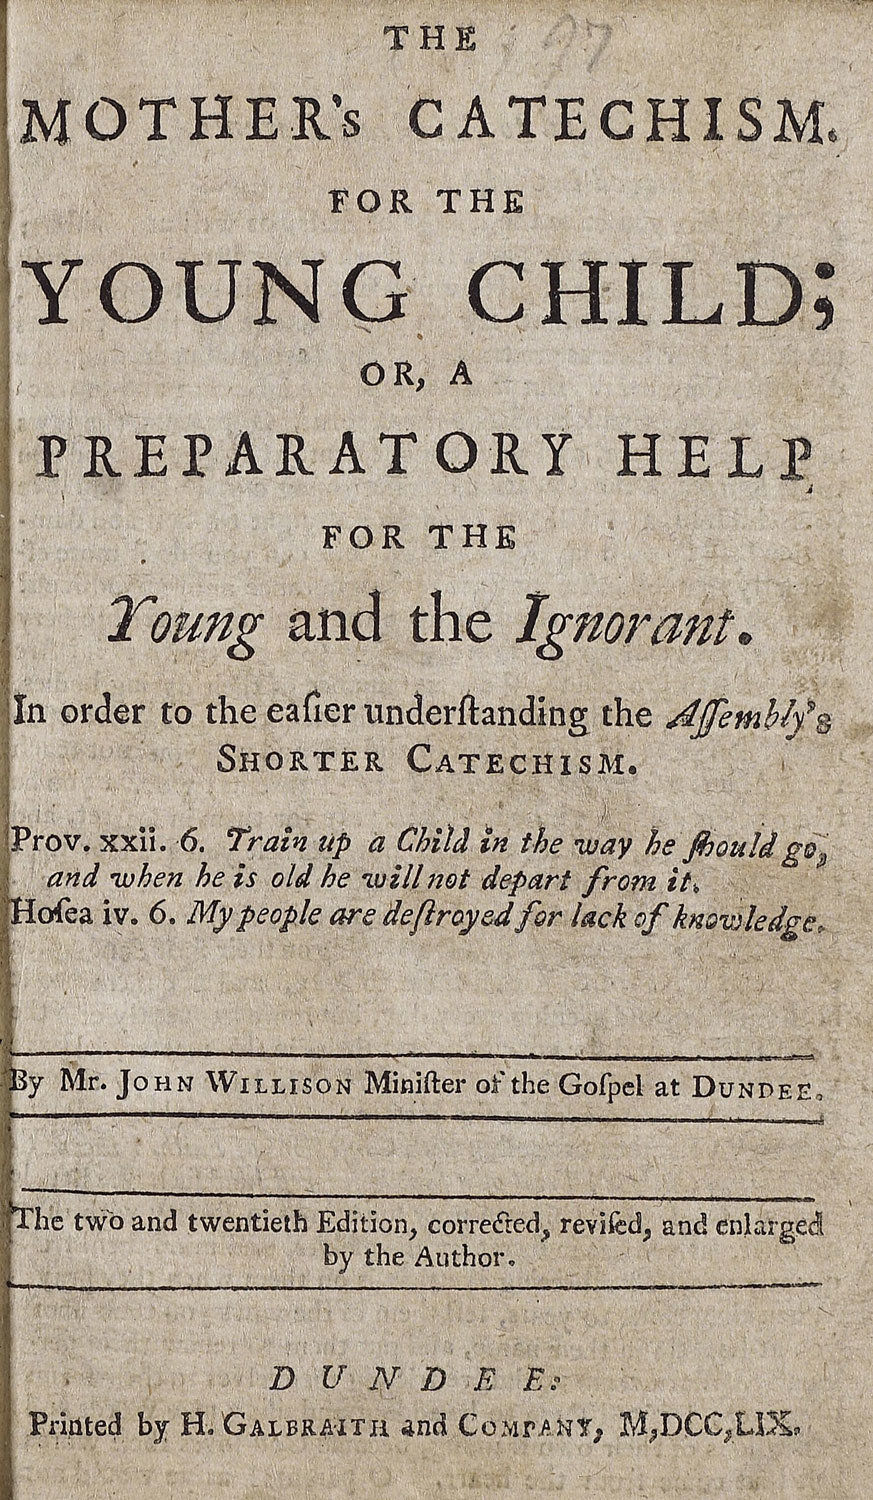 Mother's catechism for the young child, 1759, John Willison, National Library of Scotland, Public Domain Mark